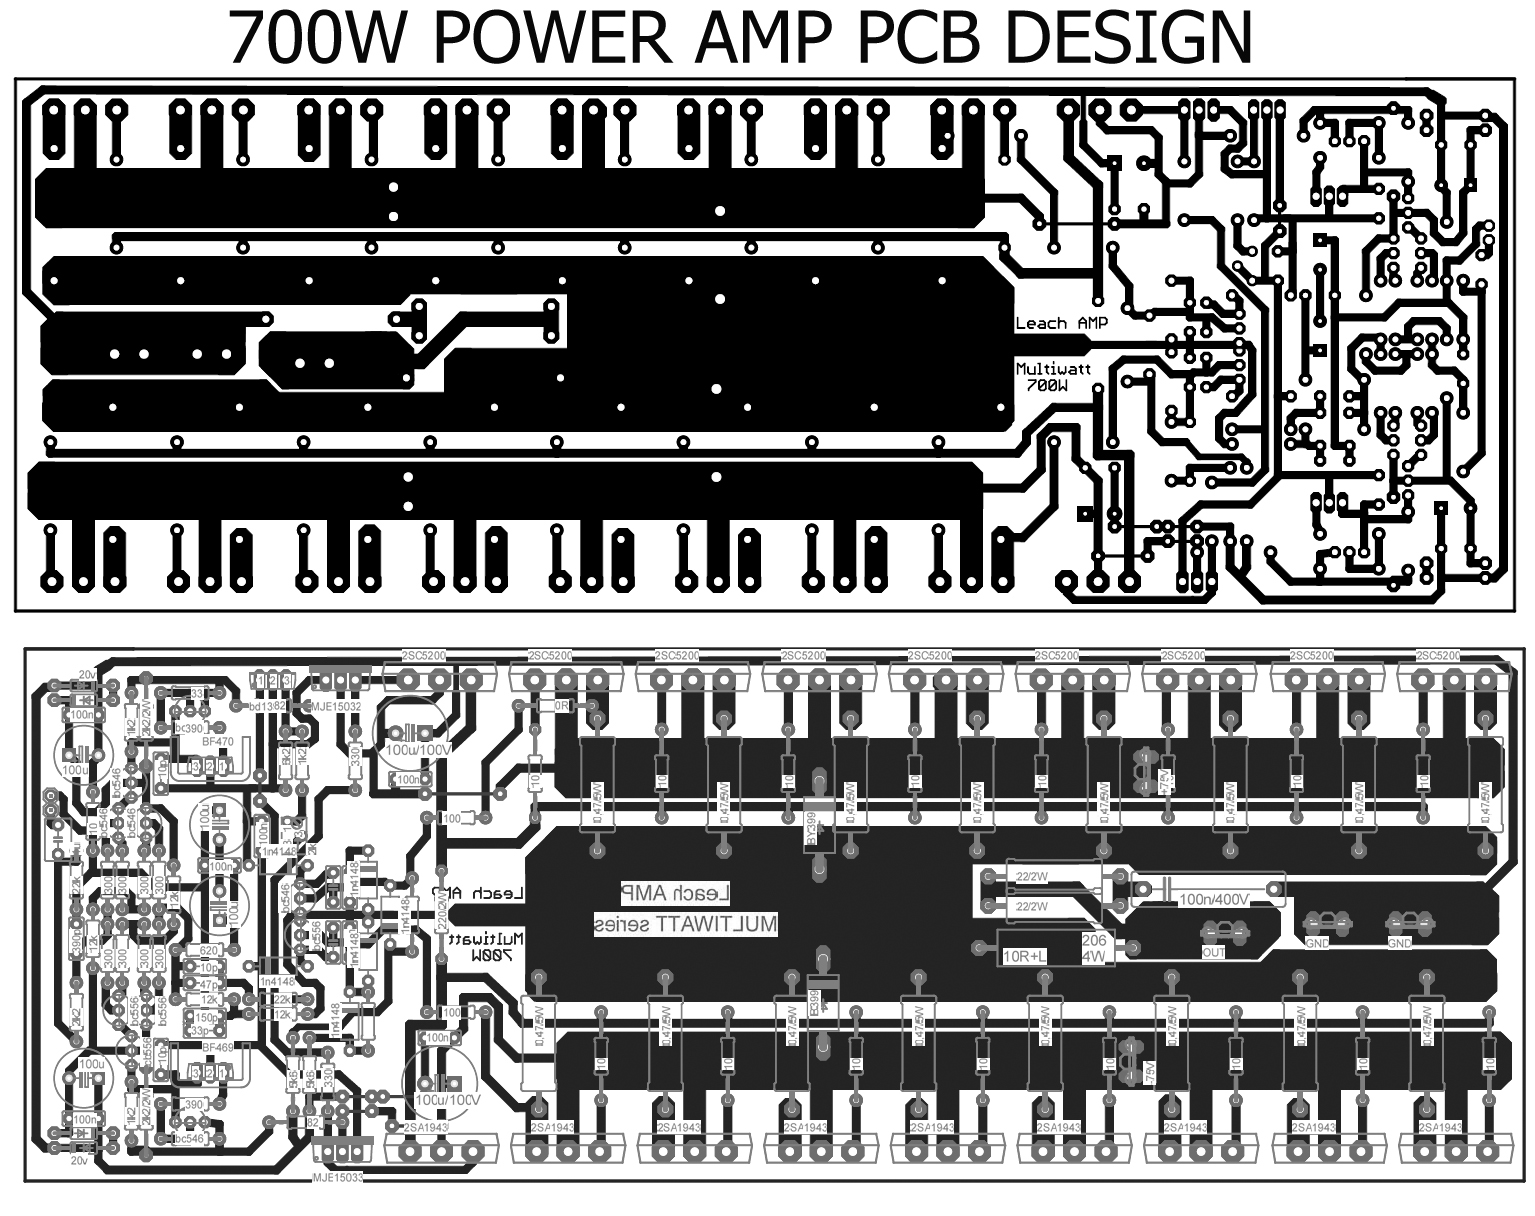 2000 Watts Power Amplifier Schematic Diagram Best Subwoofer Wiring Diagrams 700w With 2sc5200 2sa1943 Electronic